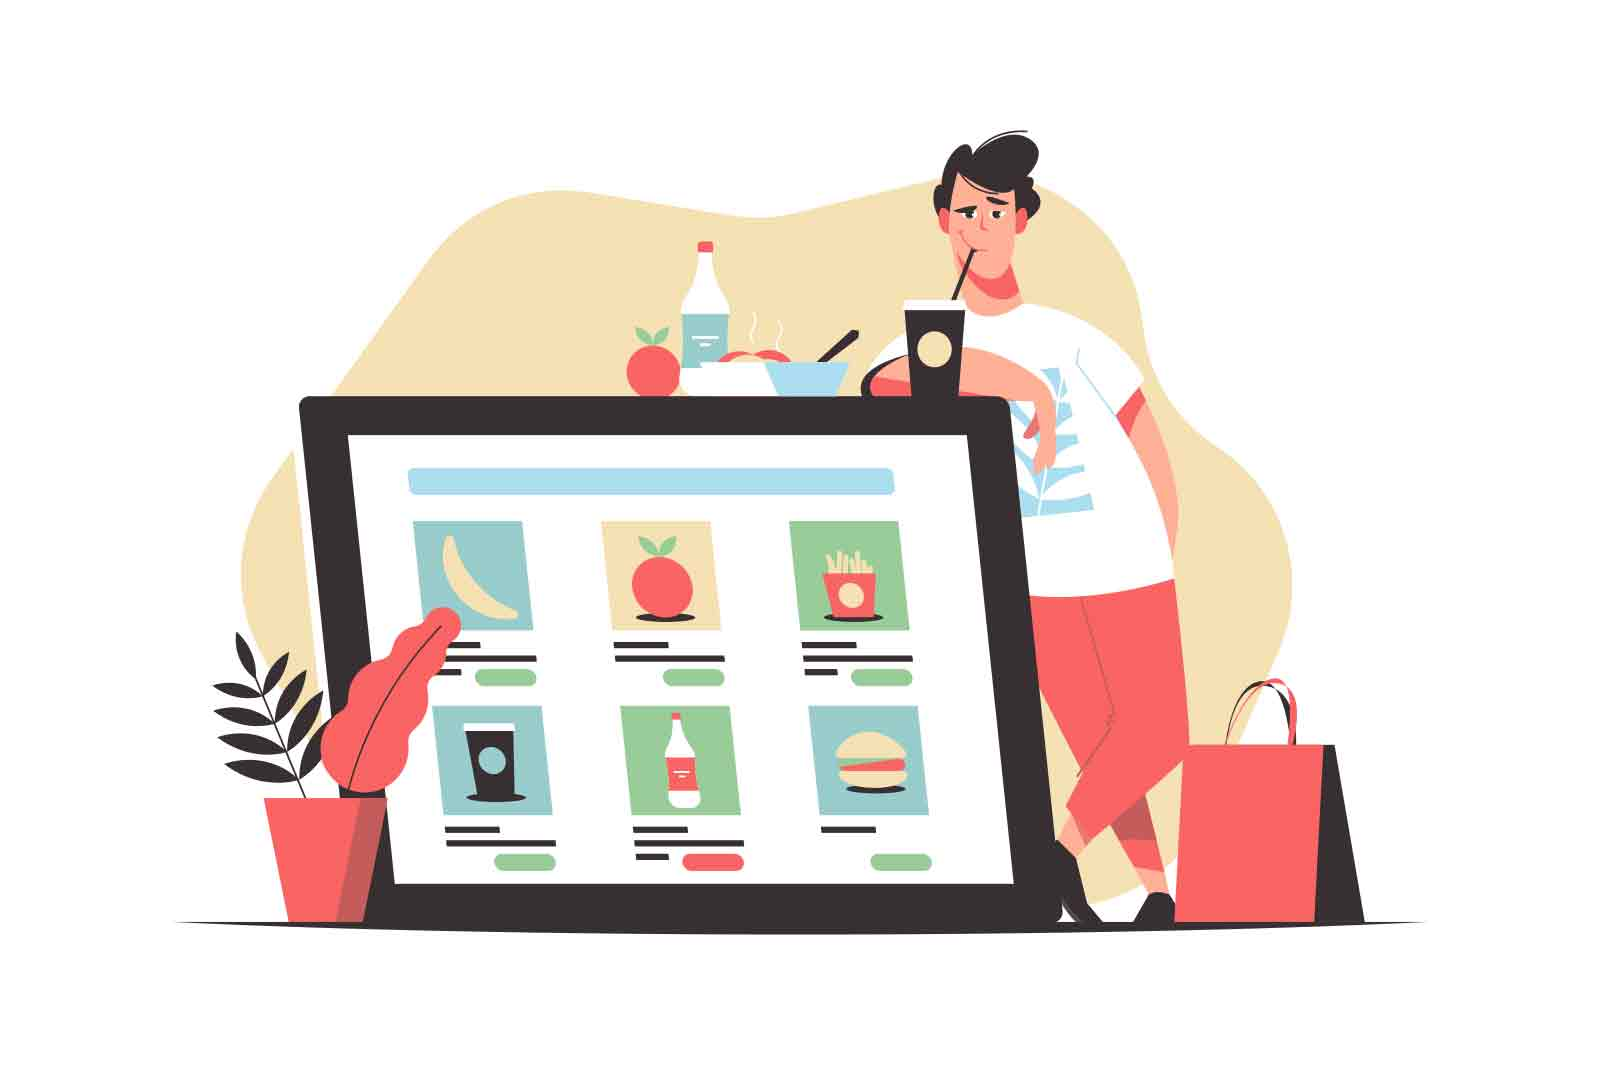 Order food online concept vector illustration. Man stands nearby giant tablet screen with food ordering app. Isolated on white background.